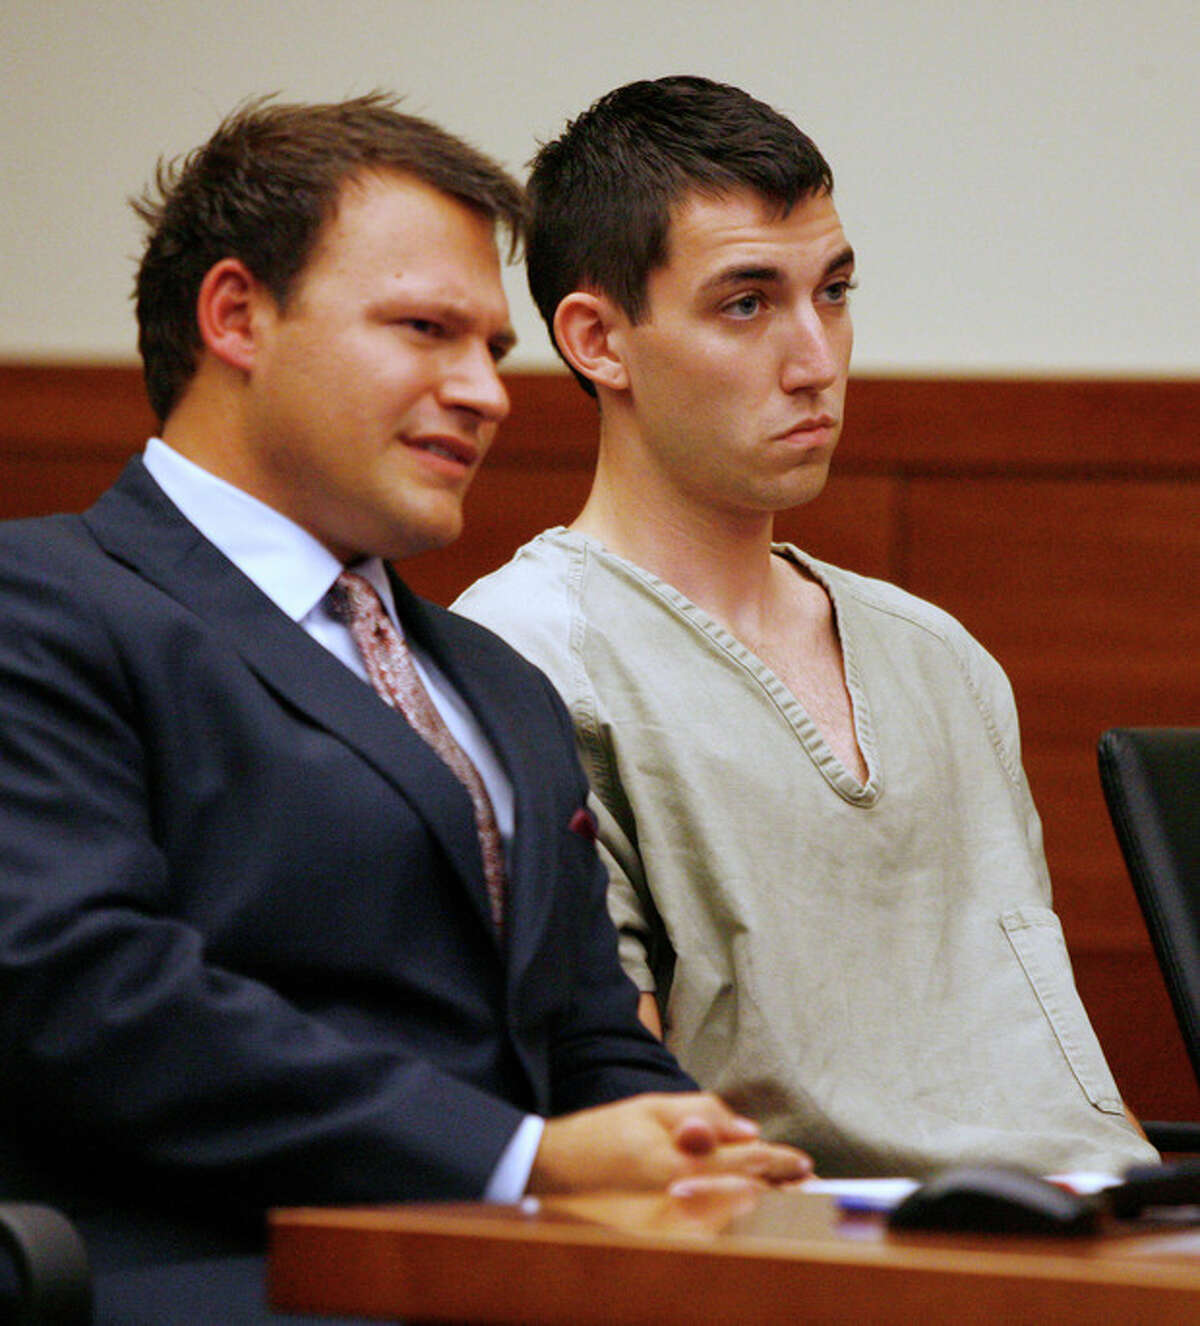 FILE- This Tuesday, Sept. 10, 2013, file photo shows Matthew Cordle, right, and his attorney, Martin Midian in court in Columbus, Ohio. Cordle, who confessed in an online video to causing a fatal wrong-way crash after a night of heavy drinking, will plead guilty to the crime on Wednesday, Sept 18, 2013, according to his attorneys. (AP Photo/Mike Munden, File)